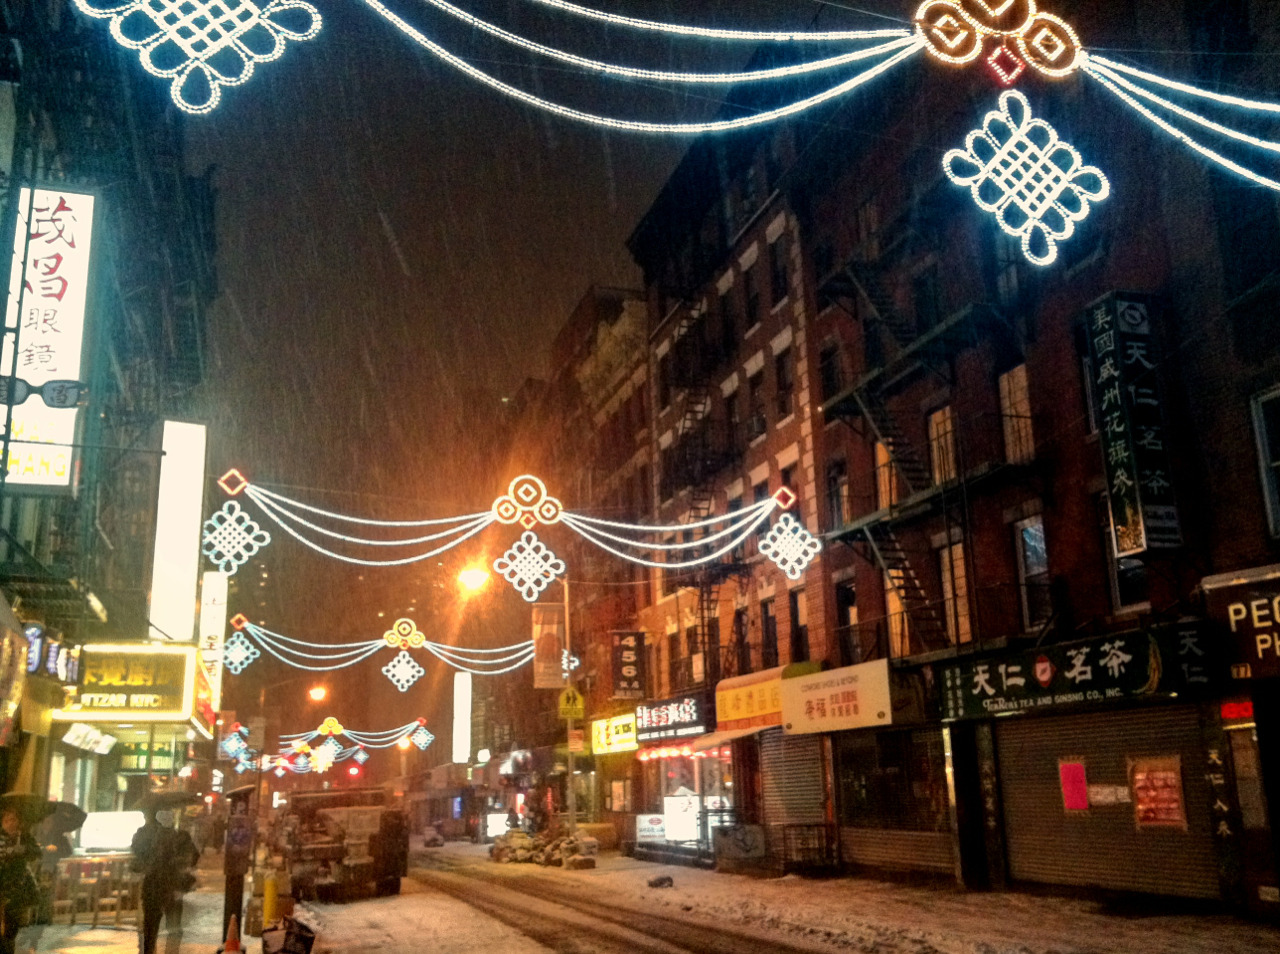 Earlier this evening, on Mott St